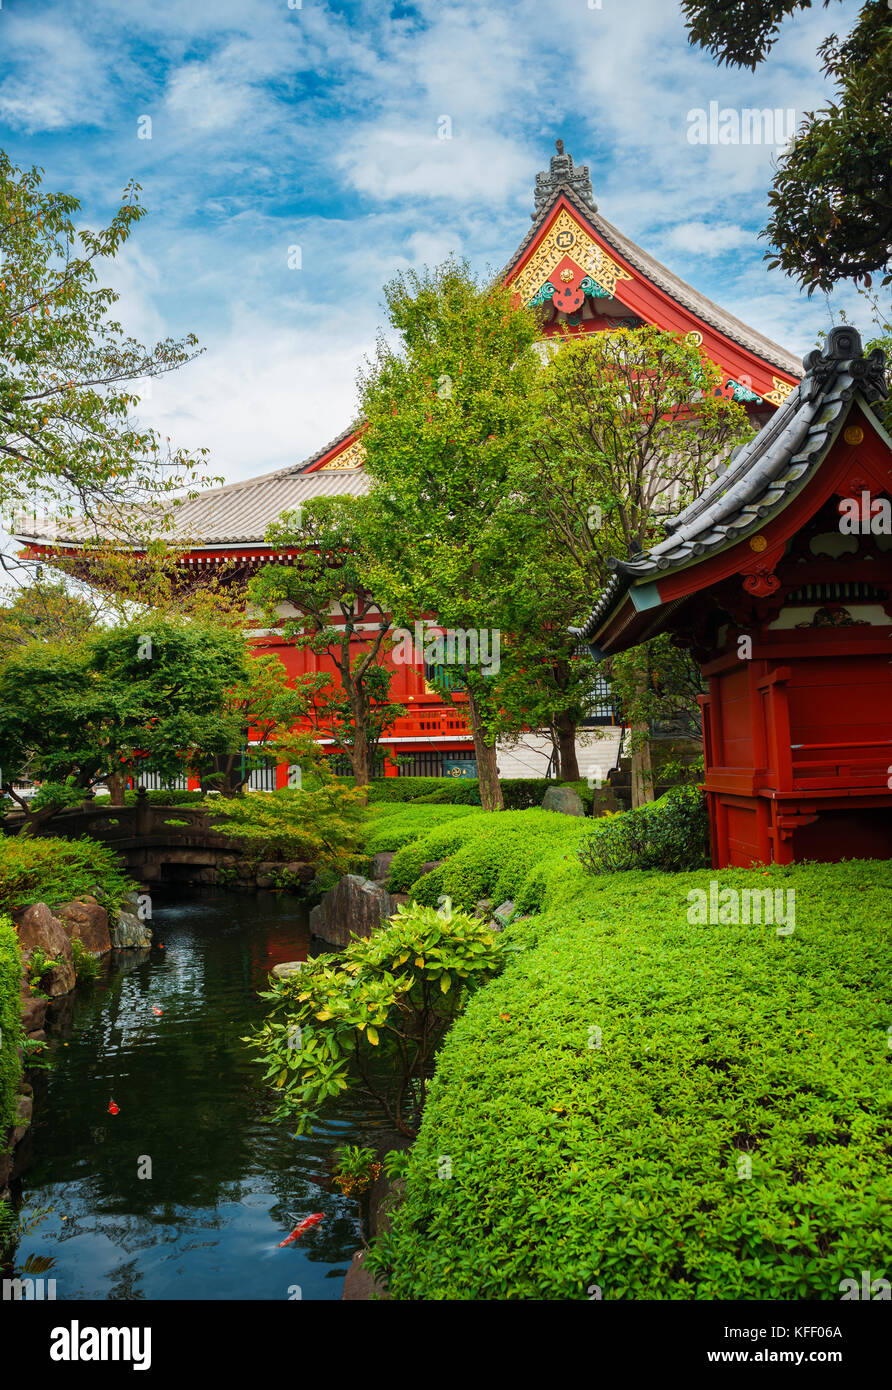 Old temples, shrines and traditional japanese garden in Asakusa district, Tokyo - Stock Image